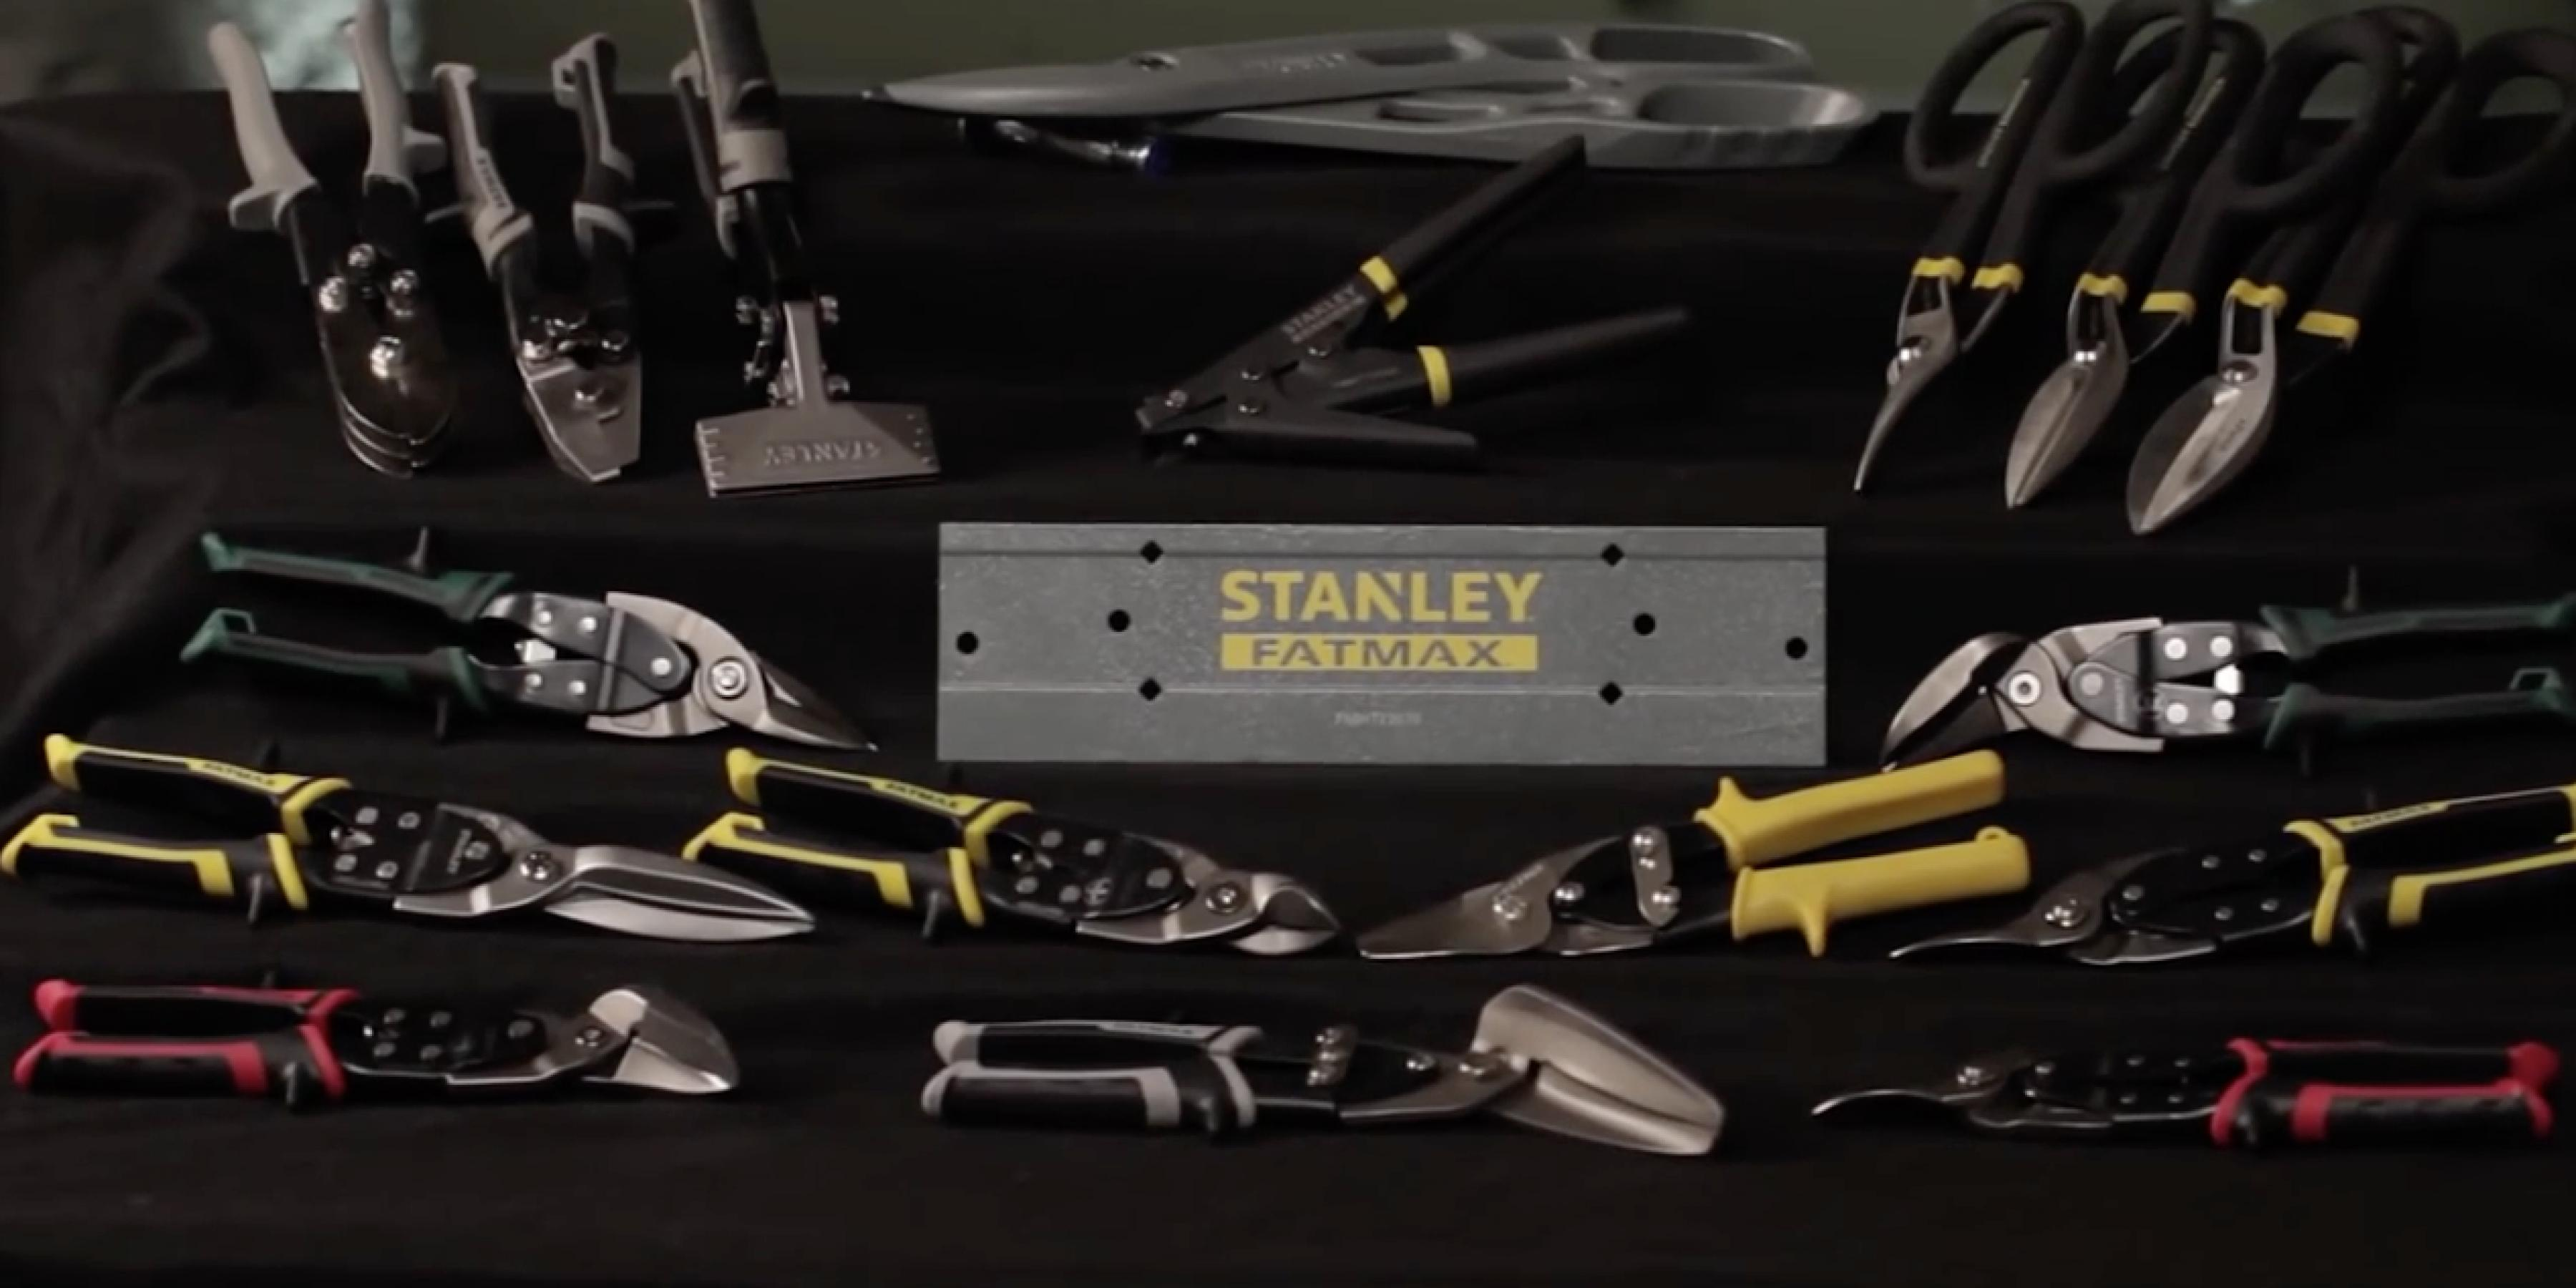 STANLEY FATMAX® Snips. HVAC Tools for a variety of applications.